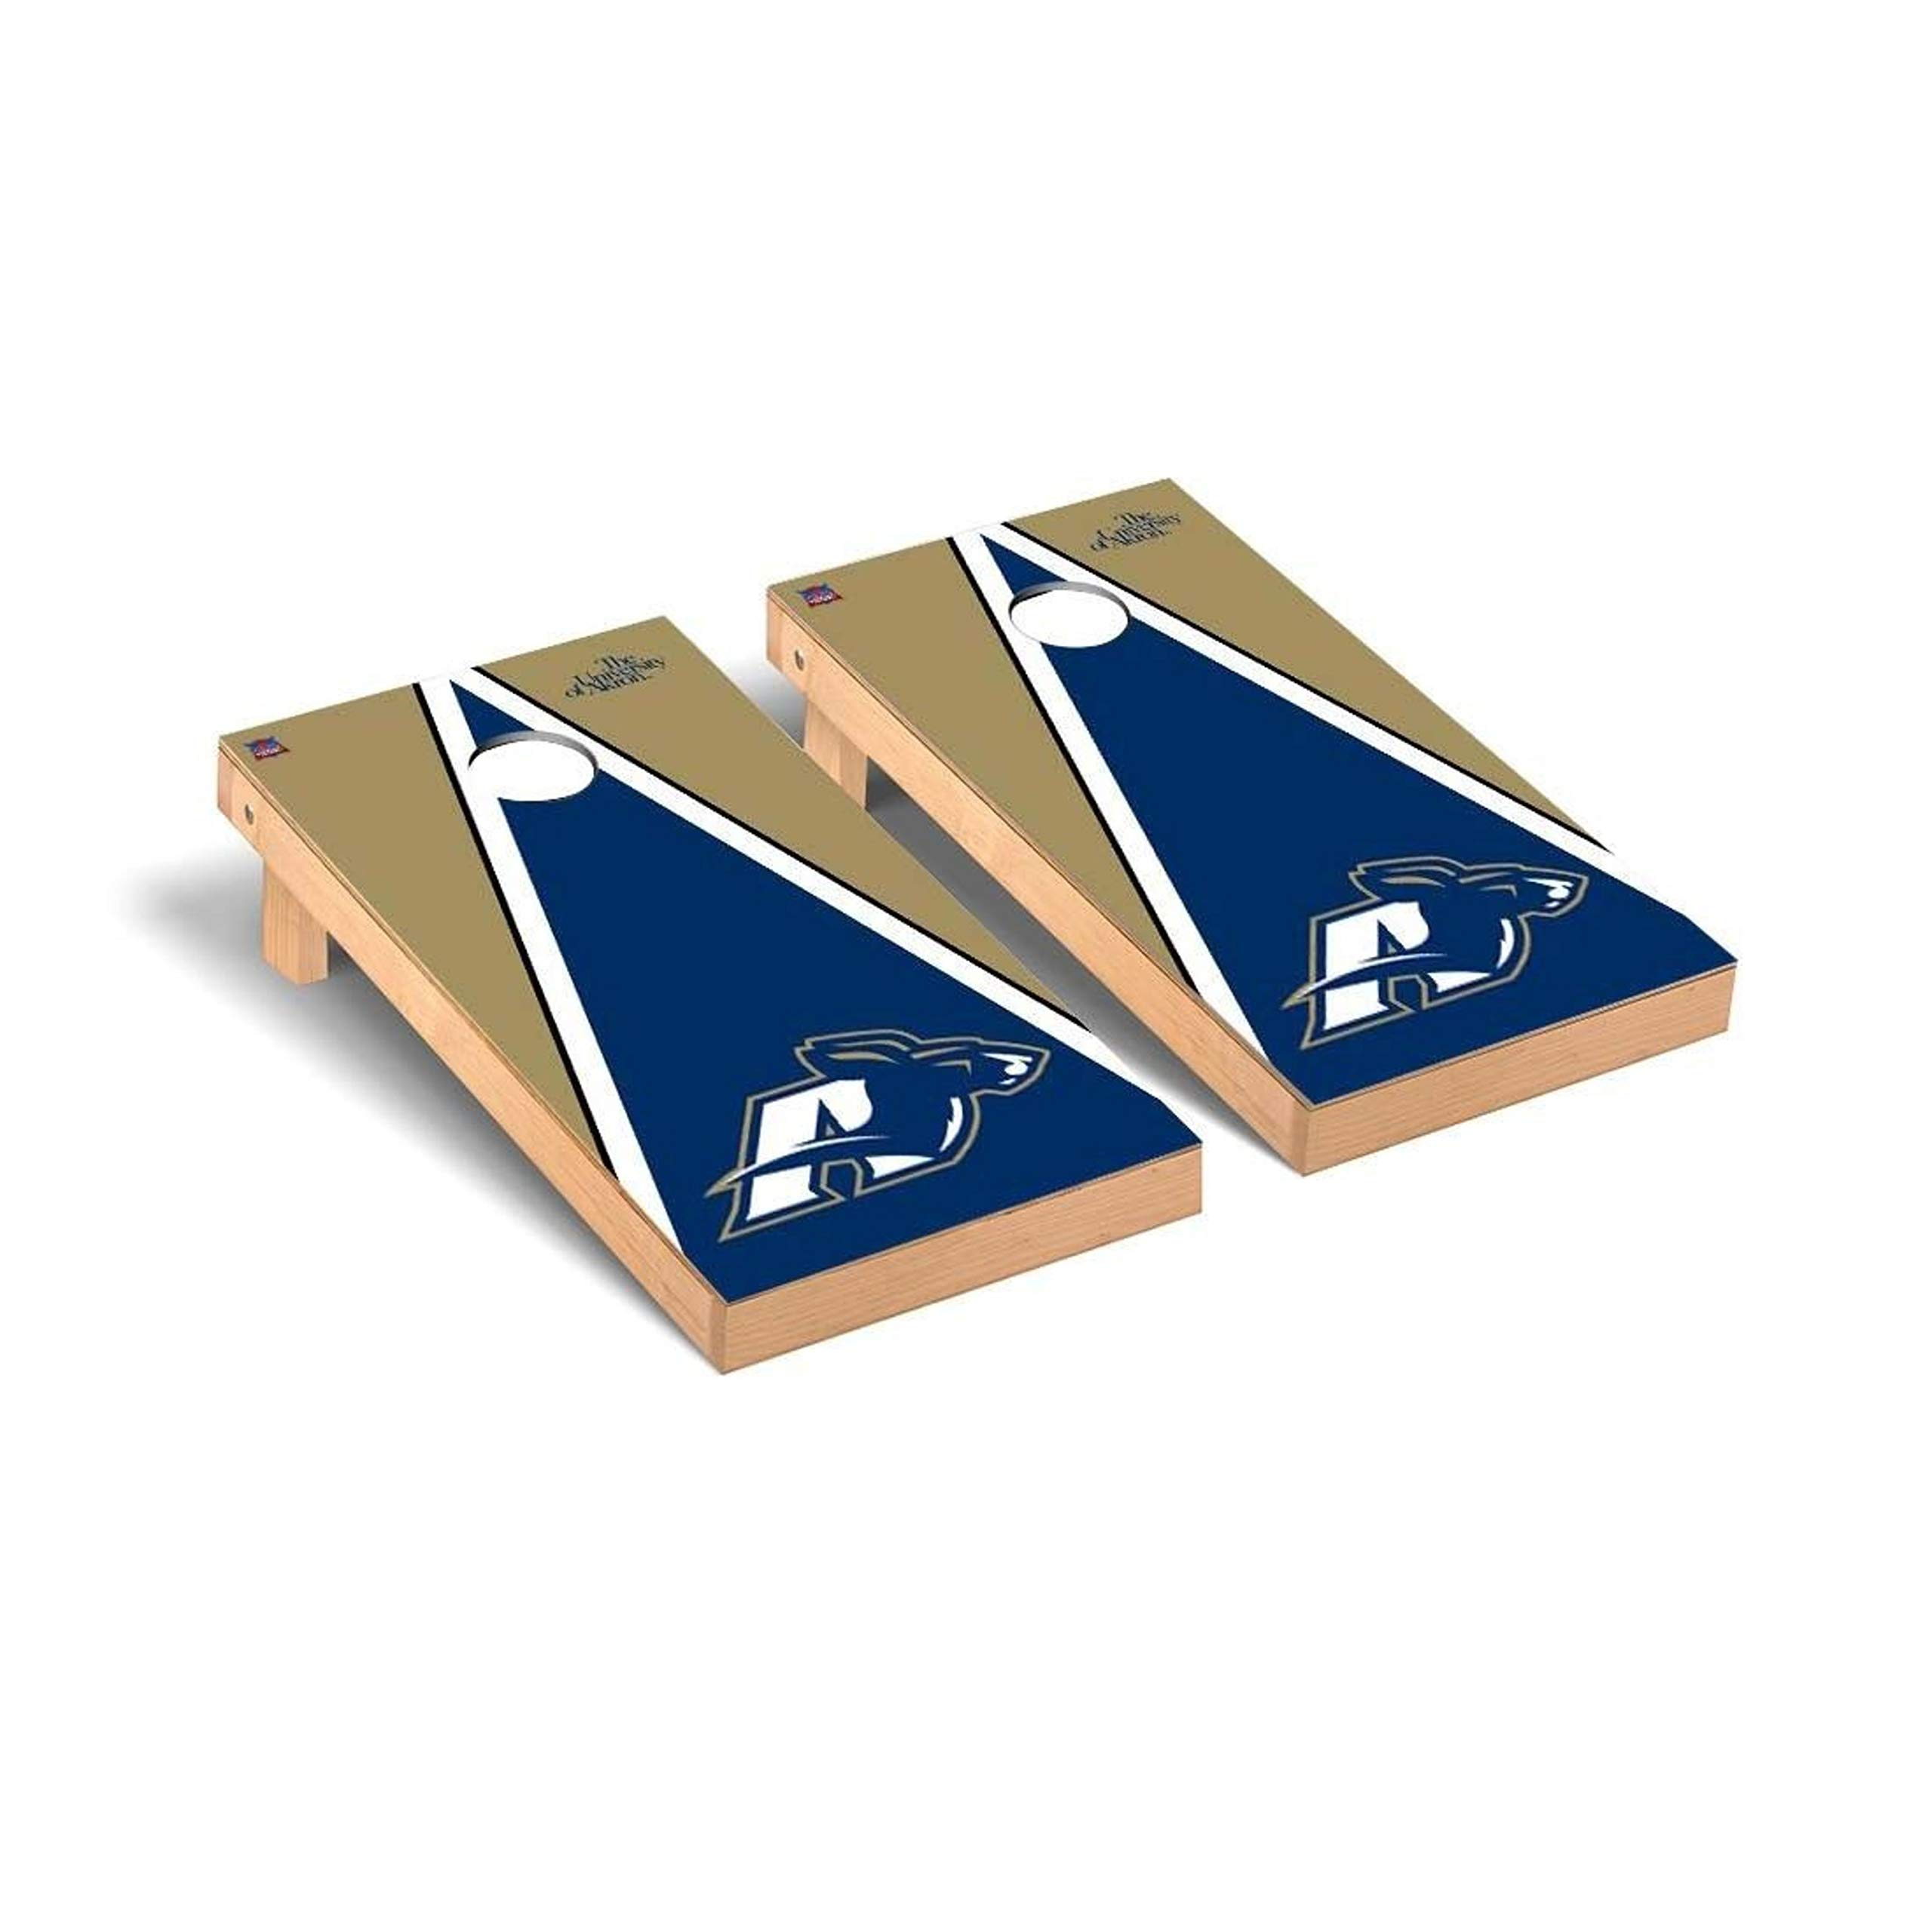 Victory Tailgate Regulation Collegiate NCAA Triangle Series Cornhole Board Set - 2 Boards, 8 Bags - Akron Zips